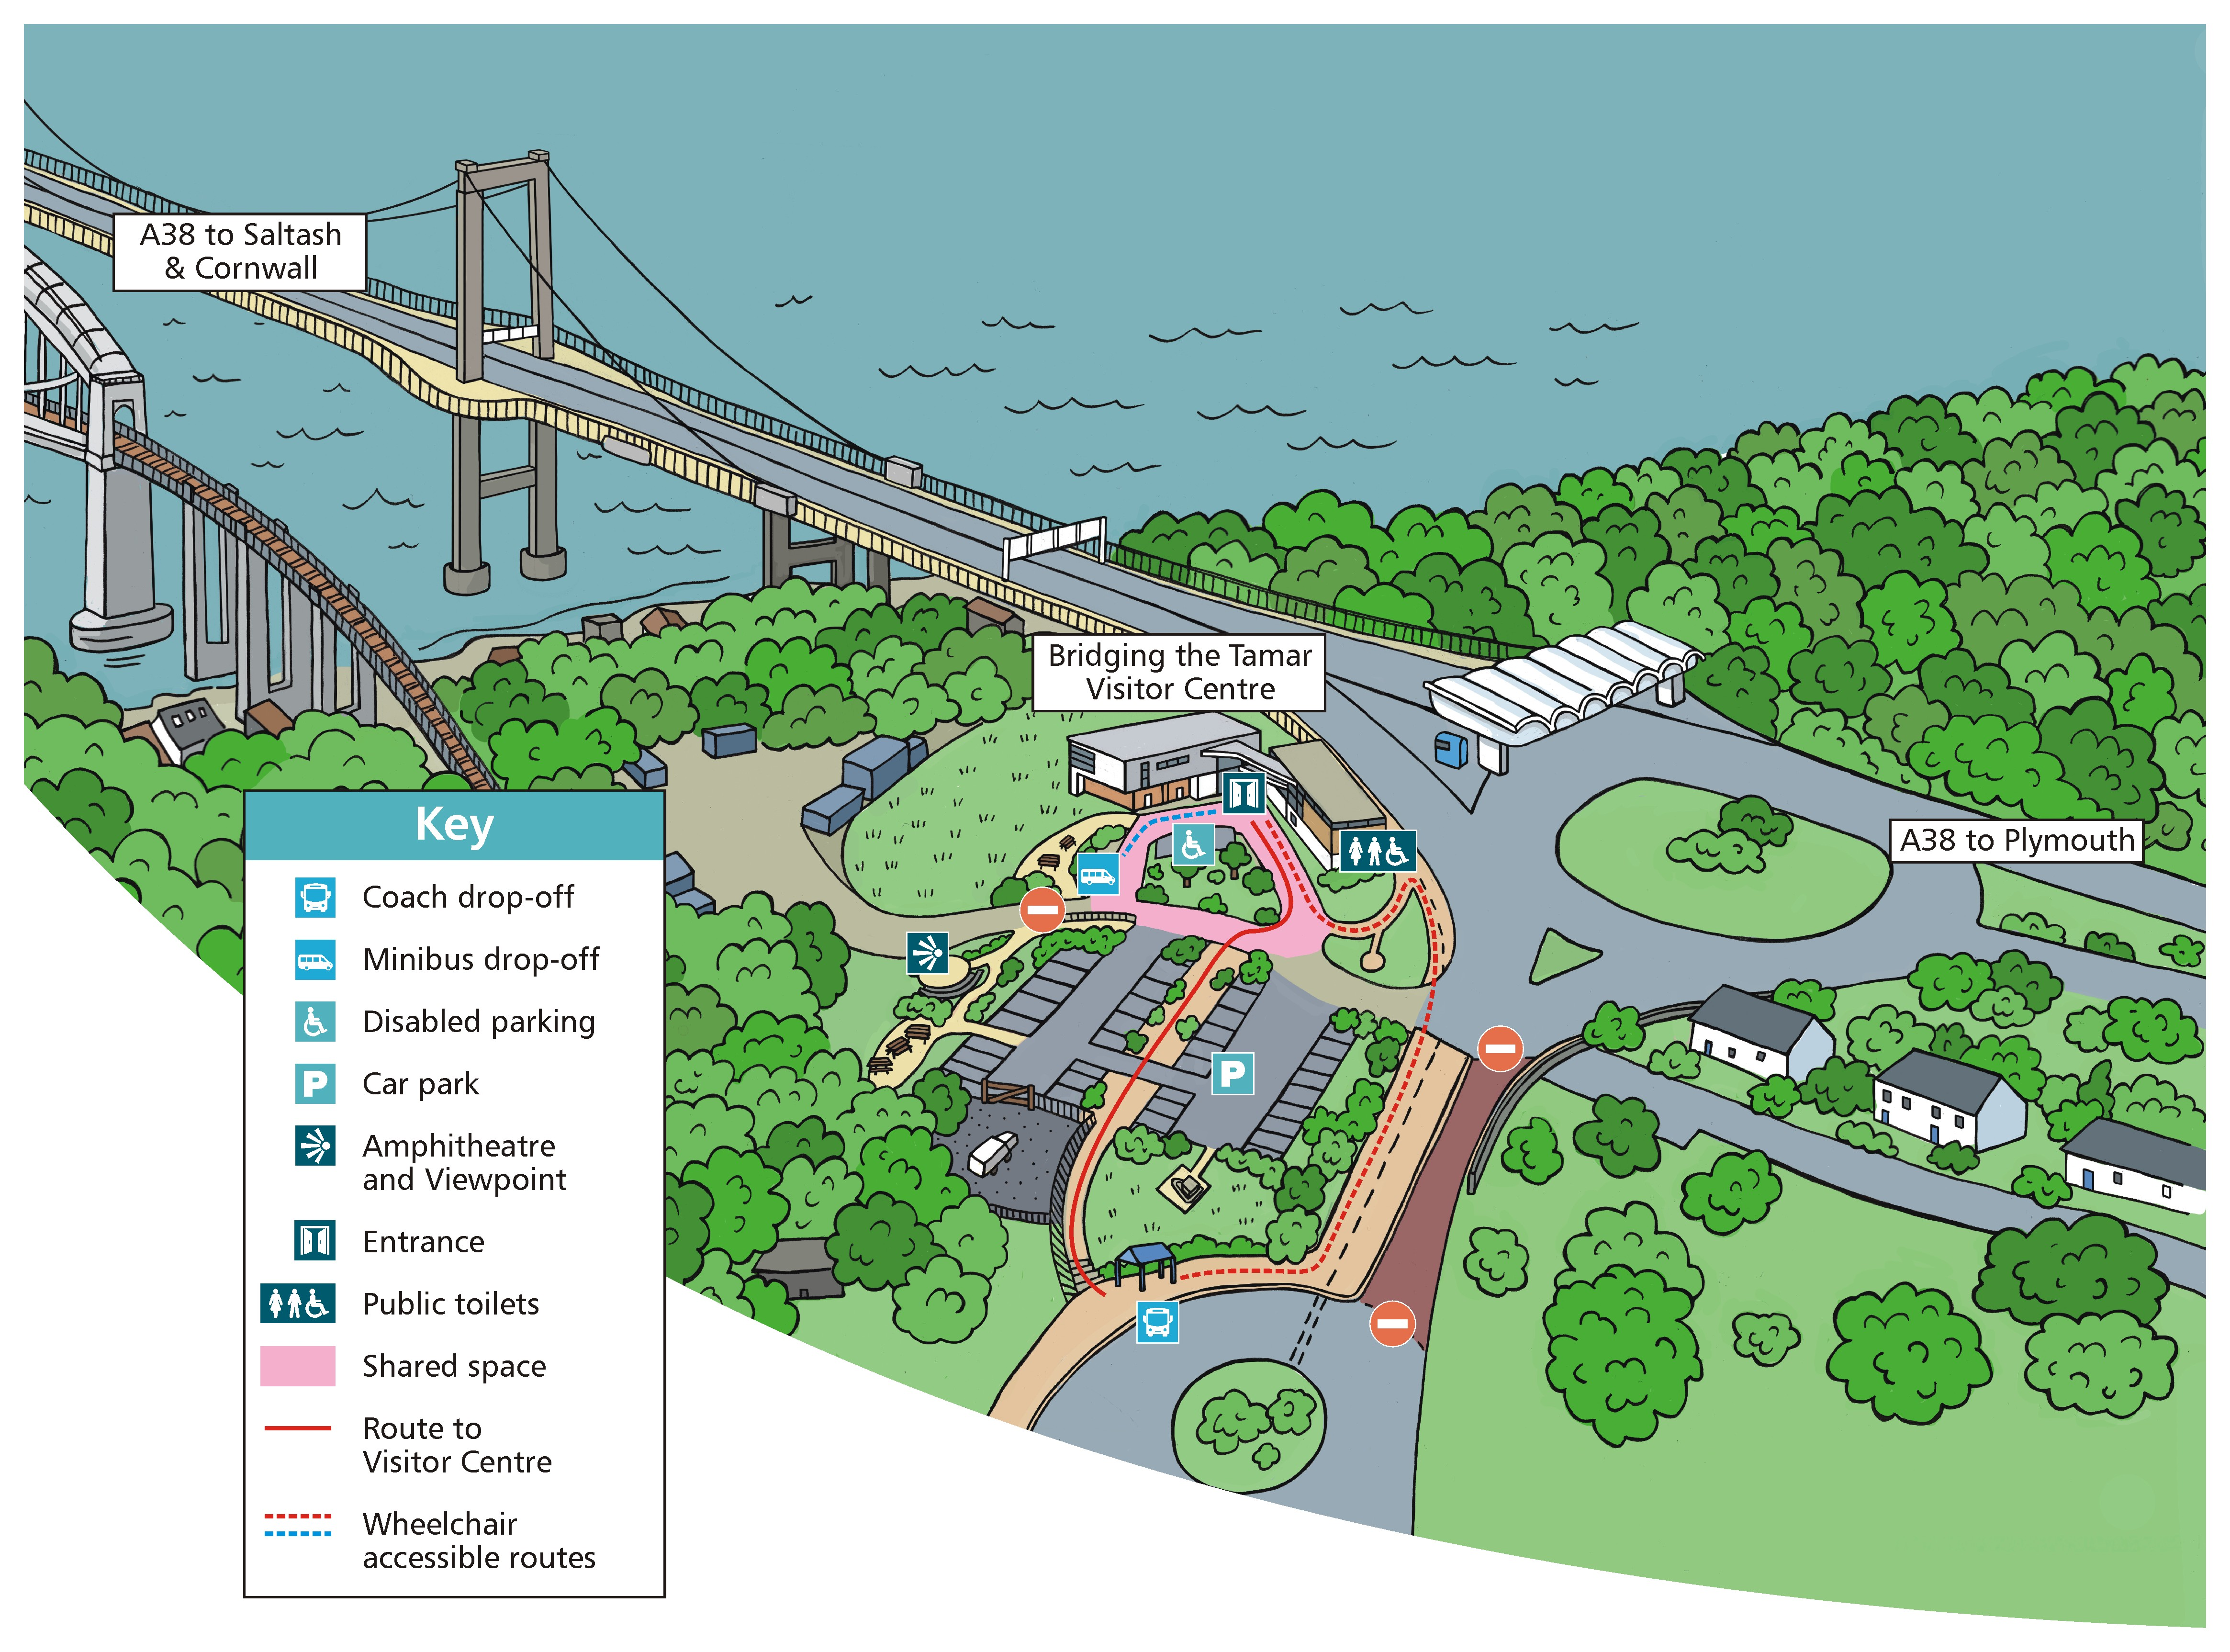 Bridging-the-Tamar-site-map-with-access-routes-1